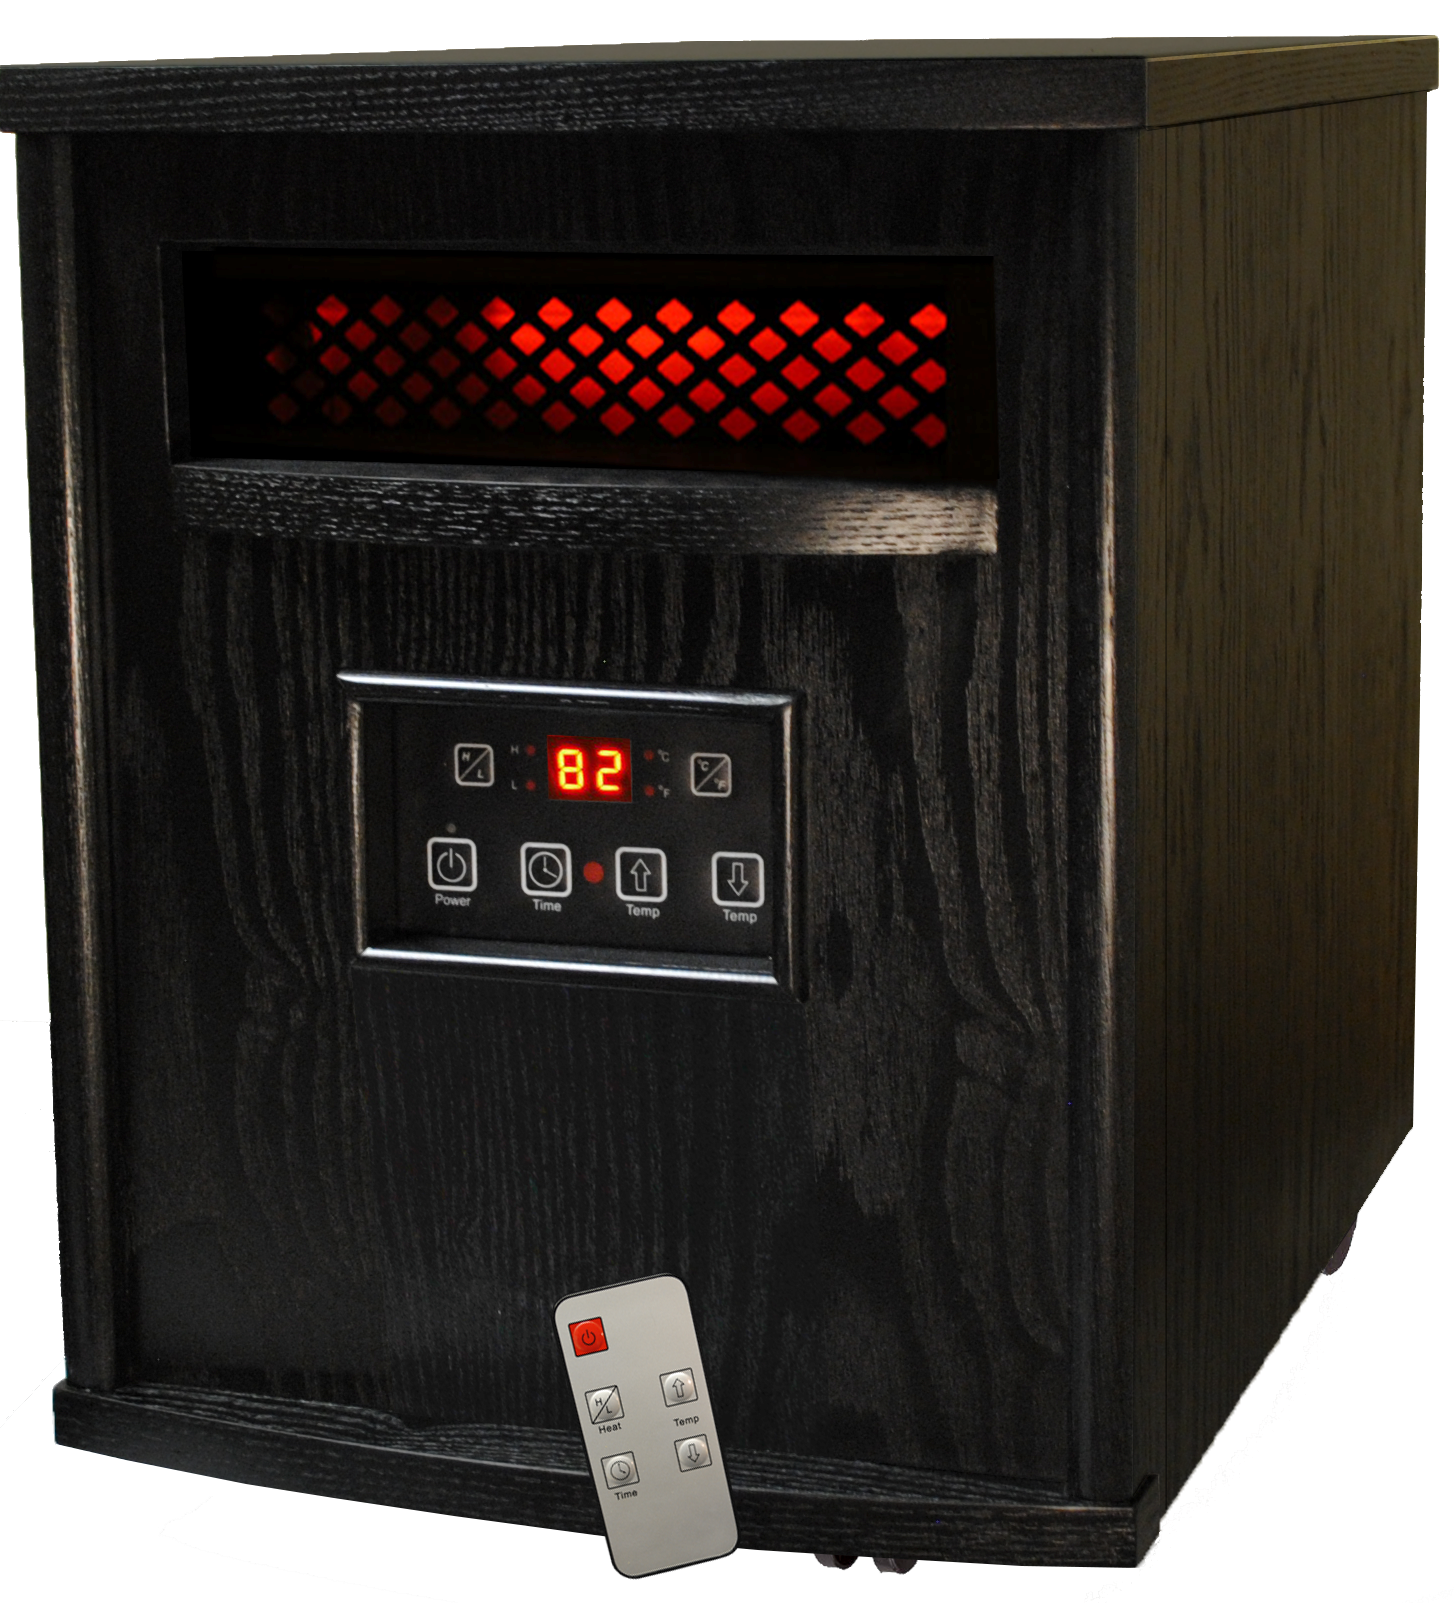 Thermal Wave by SUNHEAT TW1500 3 Year Warranty Infrared Heater with Remote Control - Black